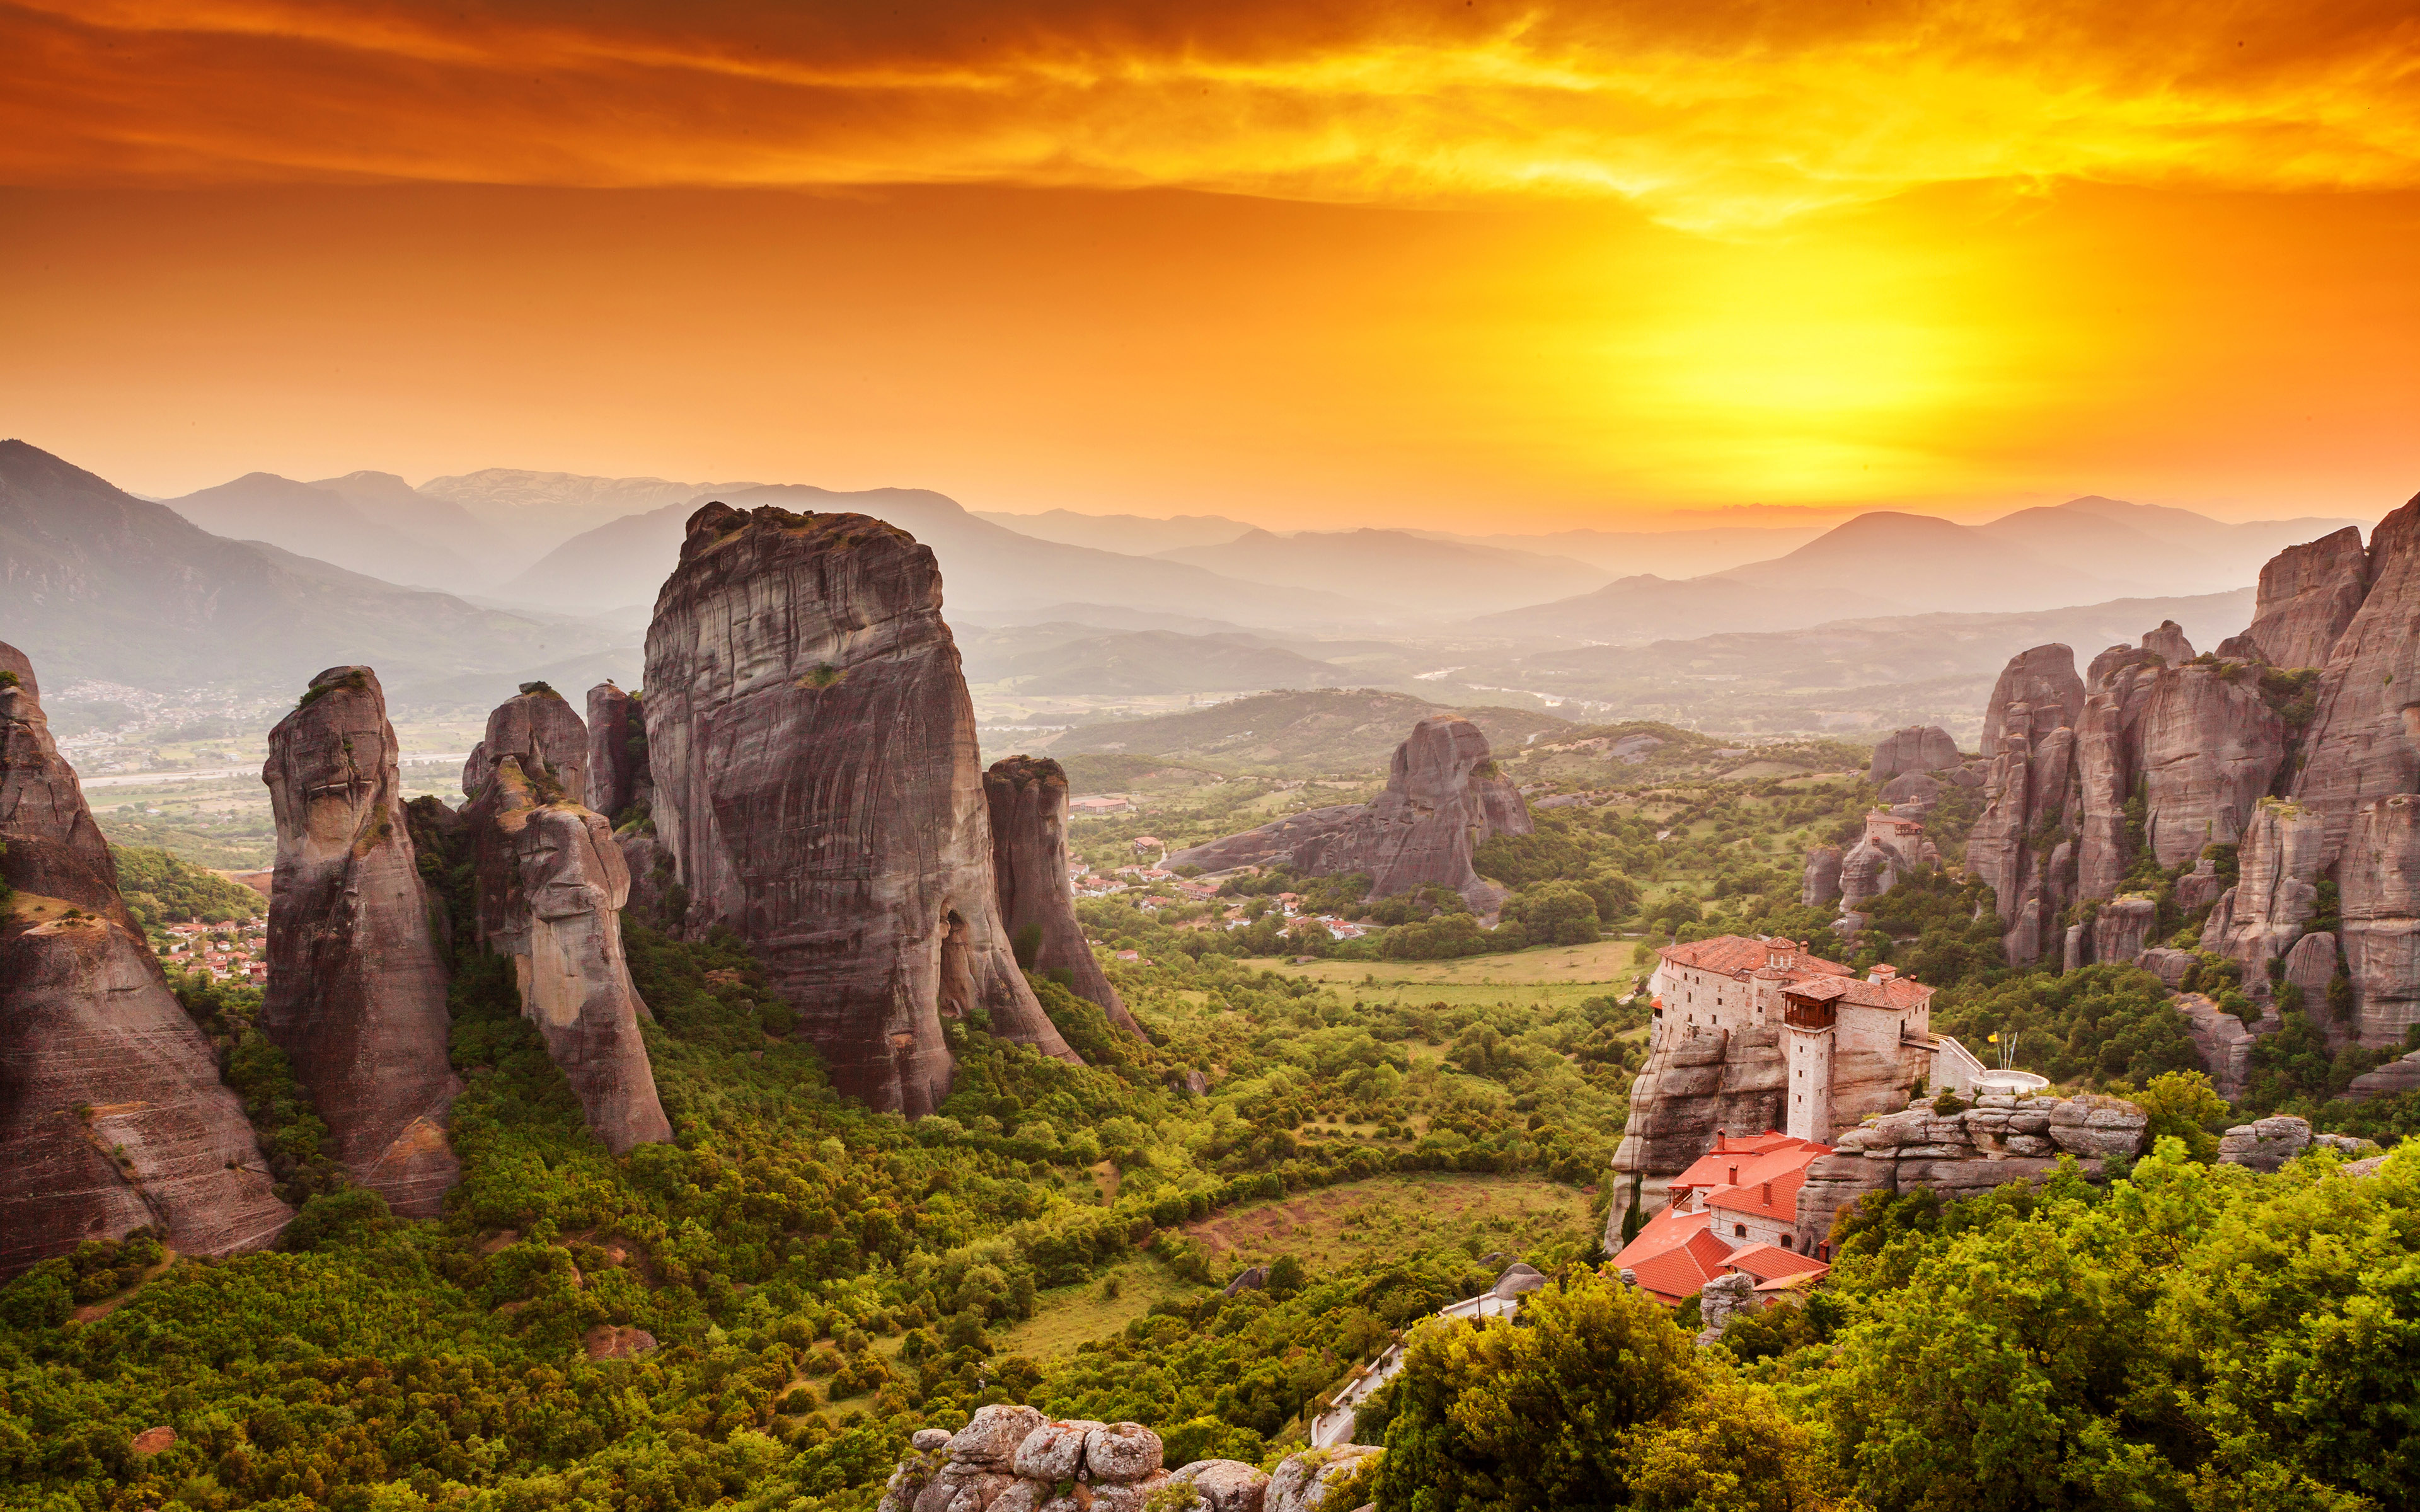 Wallpapers Wide With Quotes Meteora Monastery Sunset Greece Wallpapers